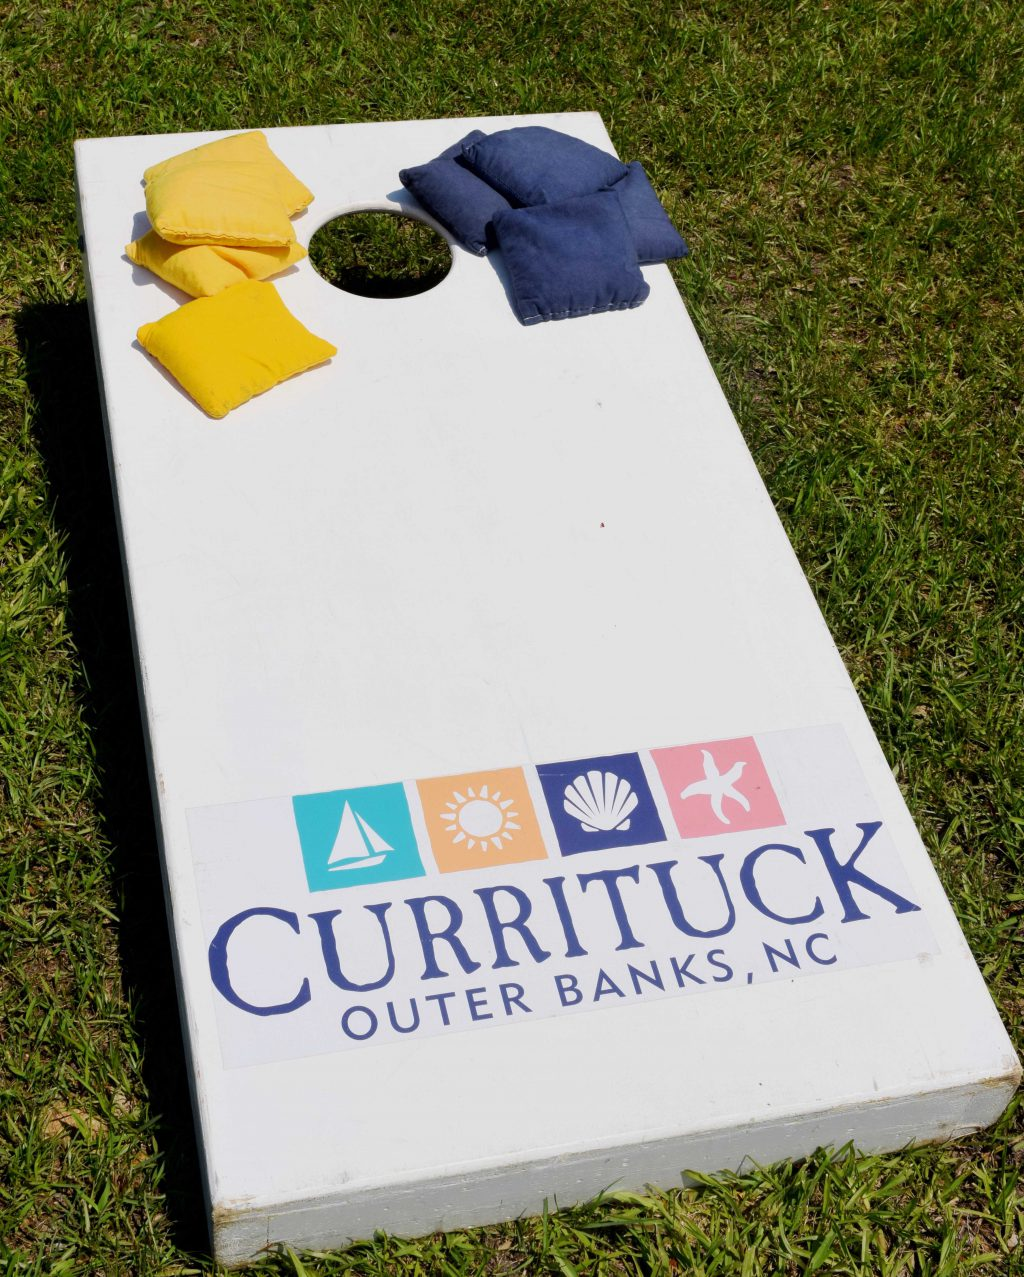 Cornhole Board With Currituck Logo